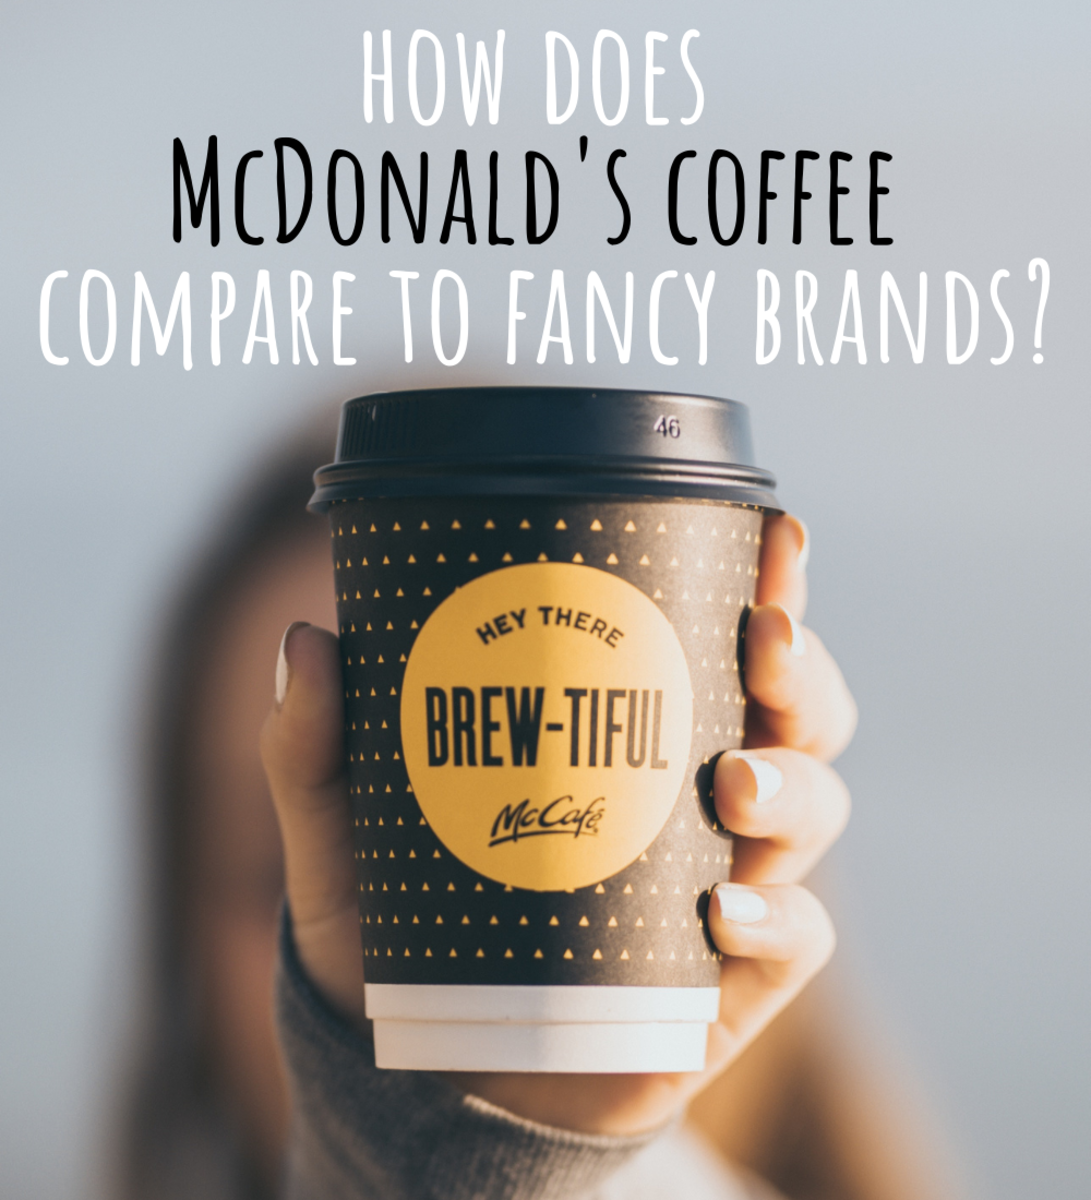 How does McDonald's coffee compare to other brands?